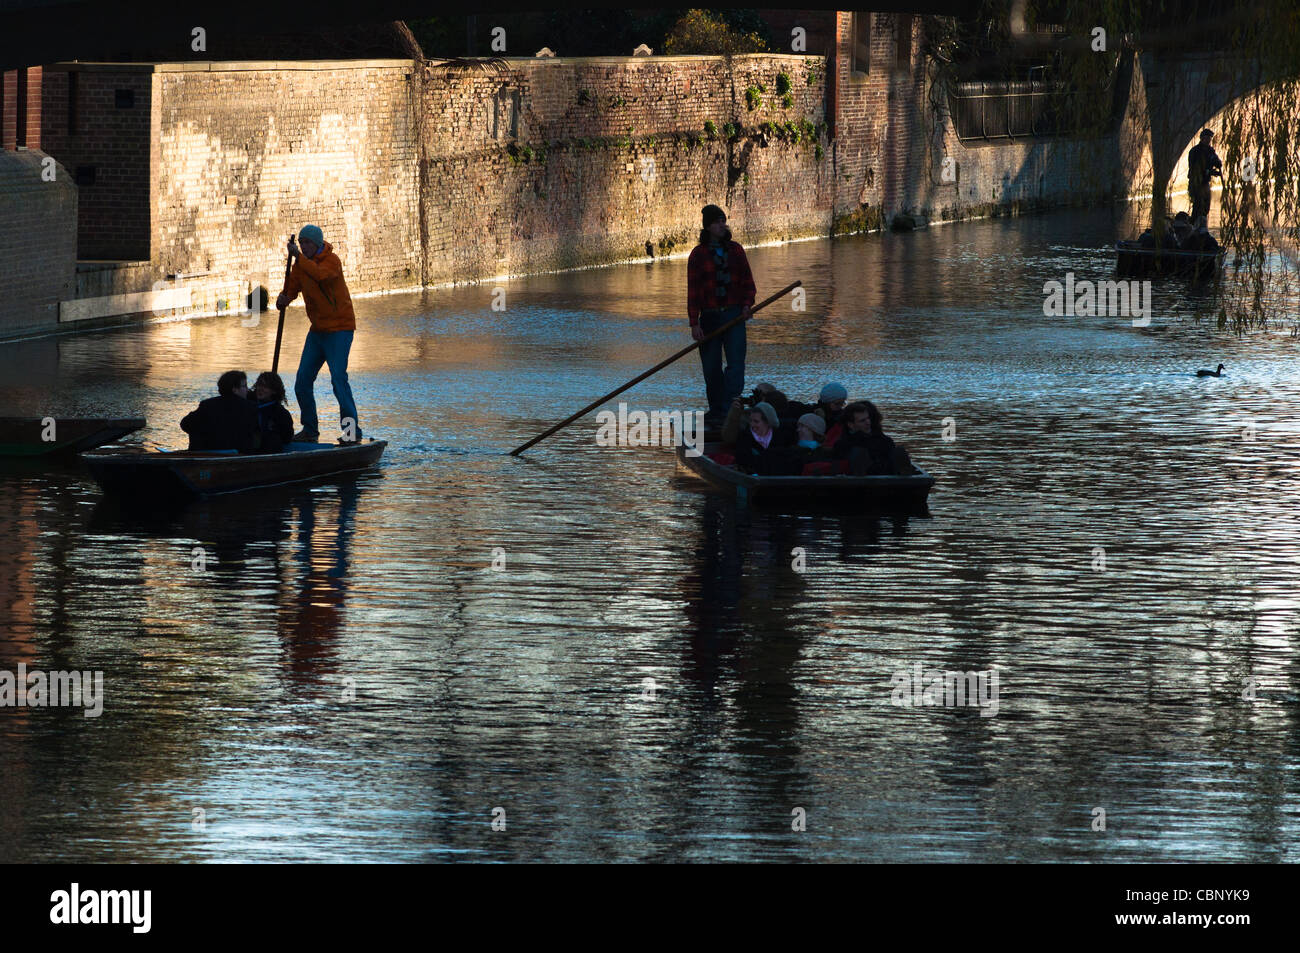 Silhouettes of punters of river Cam, Cambridge. - Stock Image